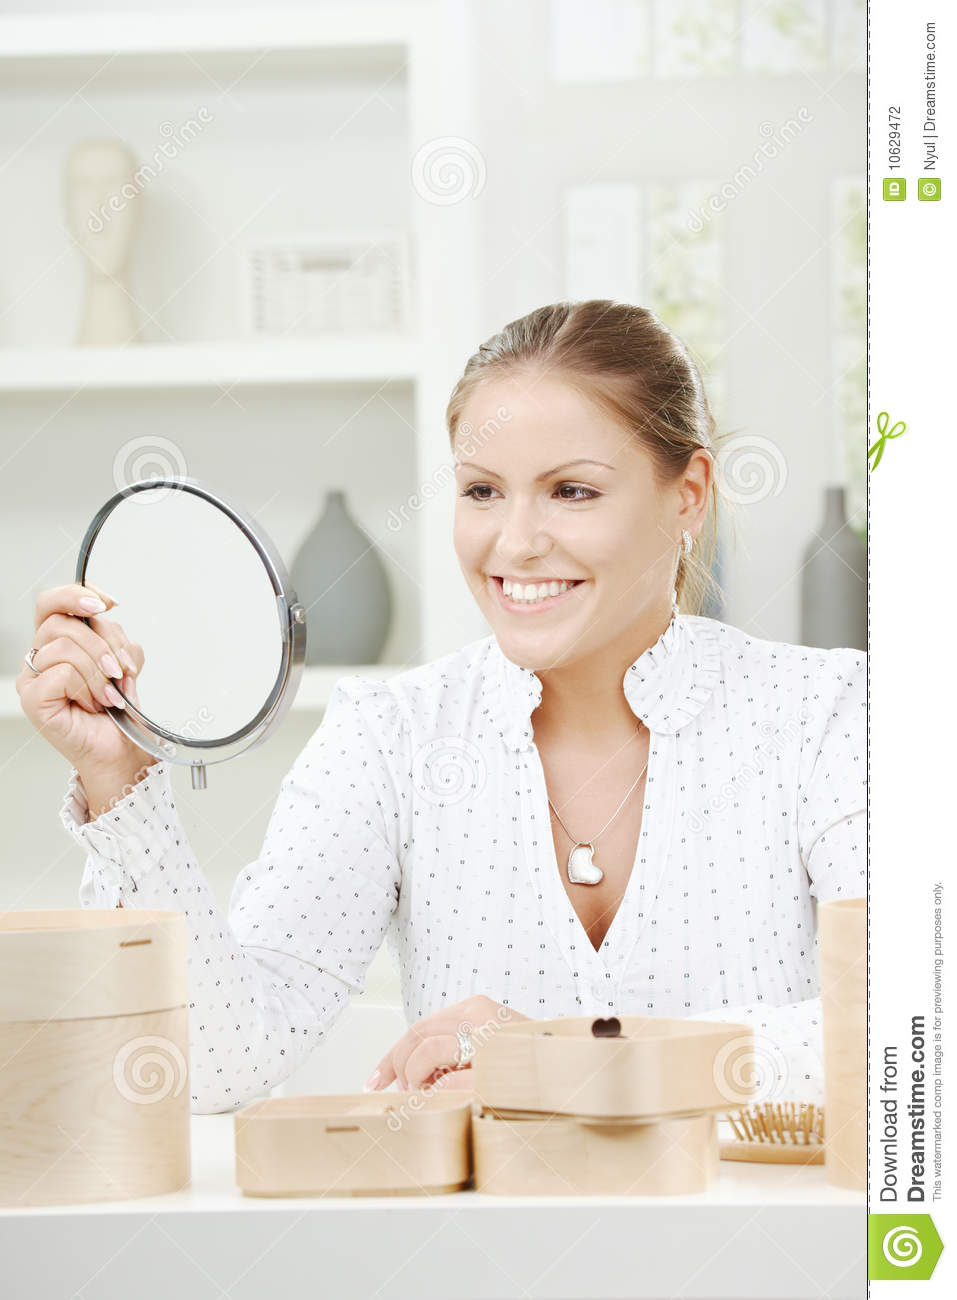 Young Woman Holding Mirror Stock Photo Image Of Female